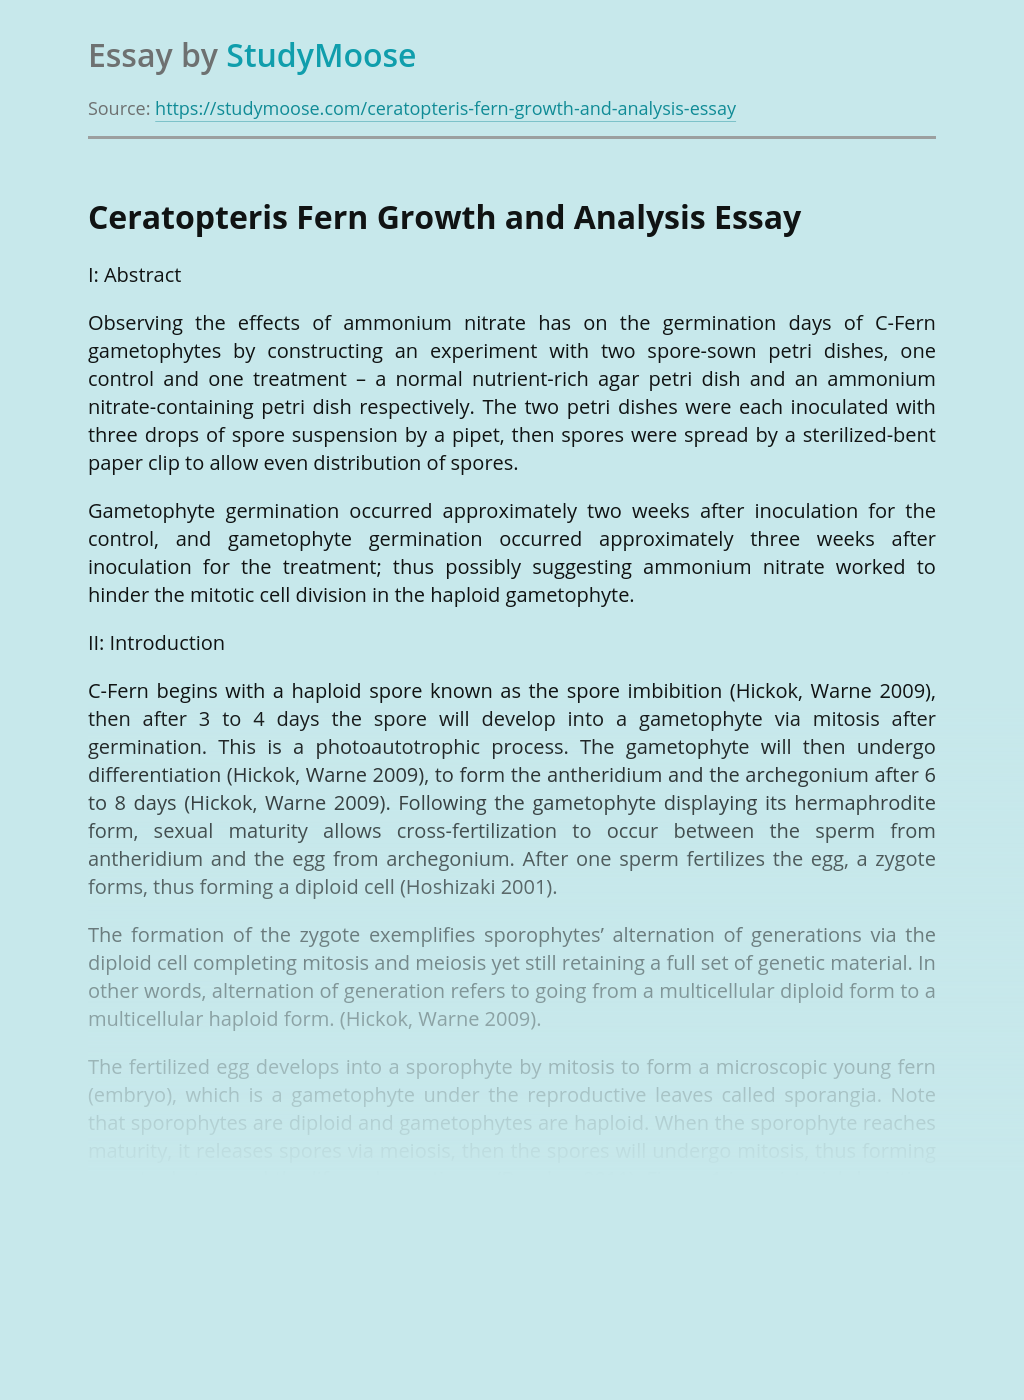 Ceratopteris Fern Growth and Analysis